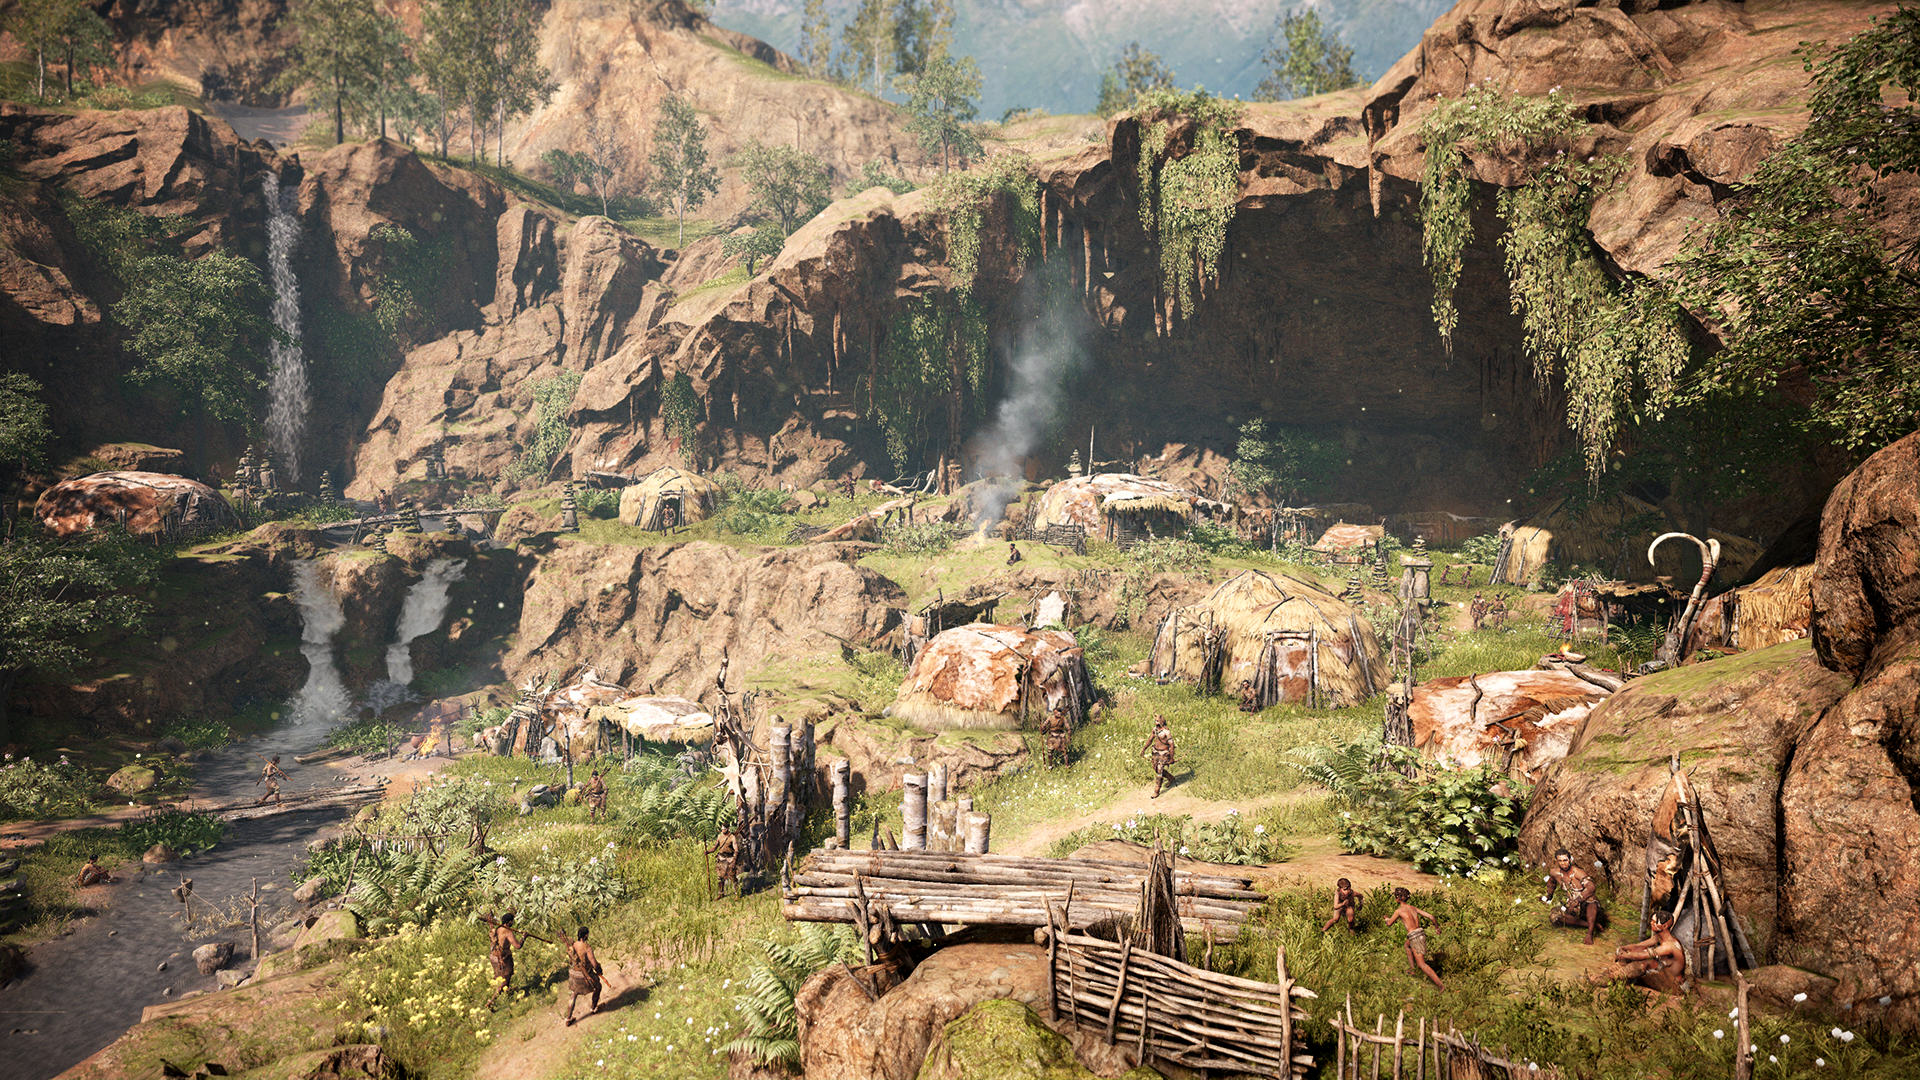 An Exclusive Look At Far Cry Primal Ahead Of Release Day FCP 08 Village Complete Screenshots PREVIEW PR 160126 6pm CET 1453716689